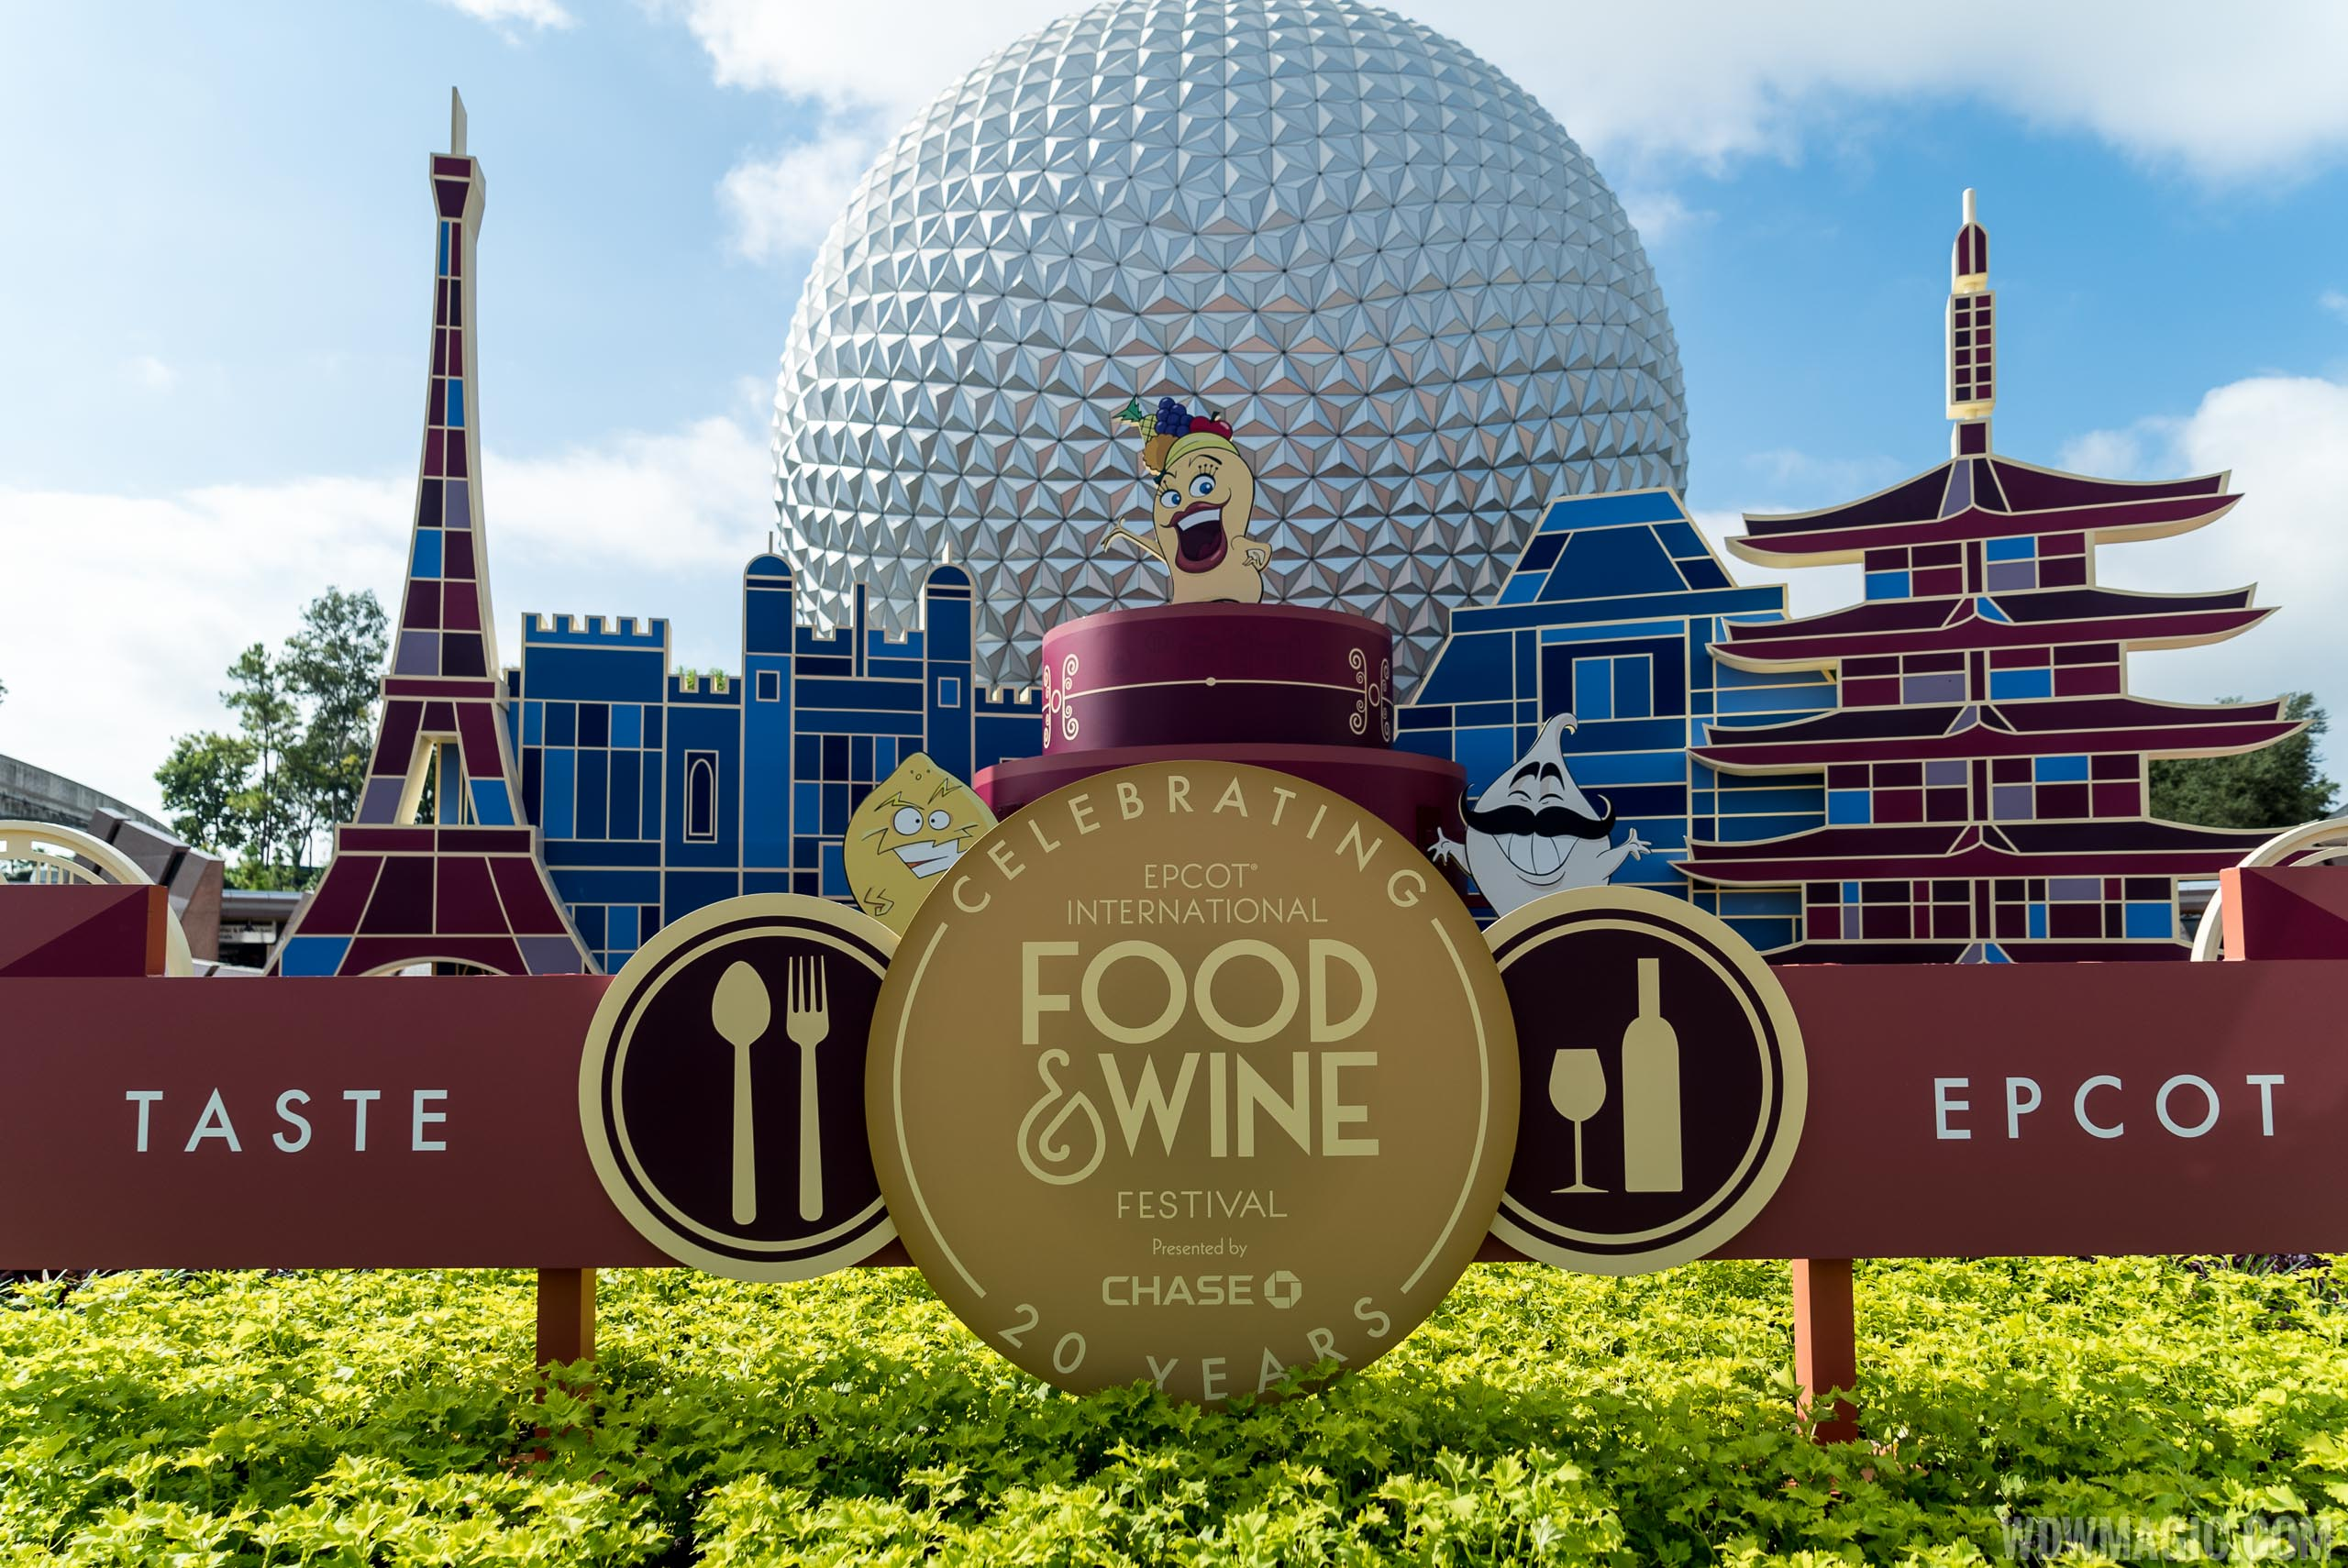 Epcot Food and Wine Festival overview